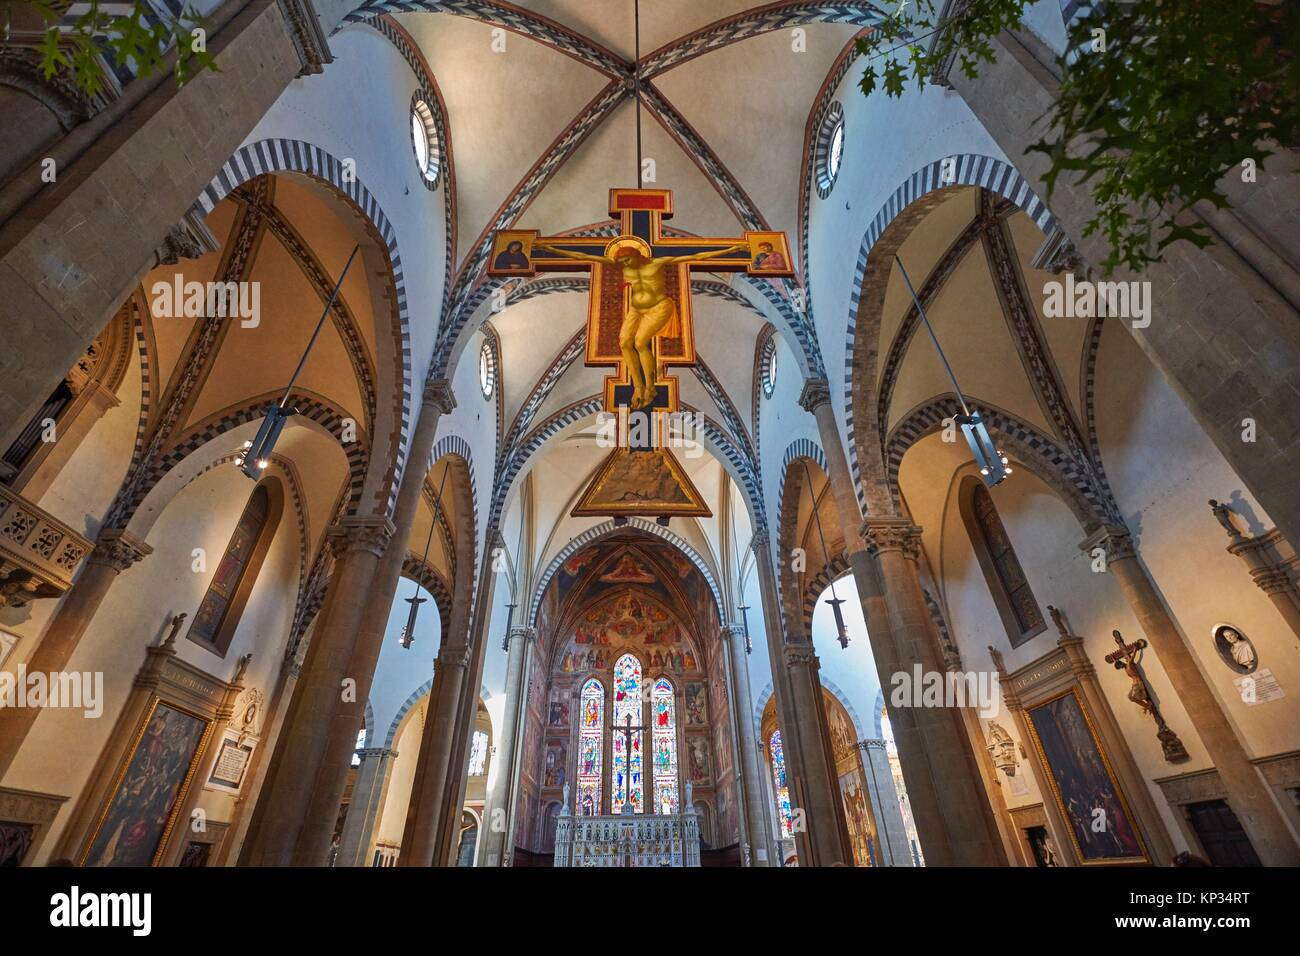 Santa Maria Novella is a church in Florence, Italy, situated just across from the main railway station named after - Stock Image